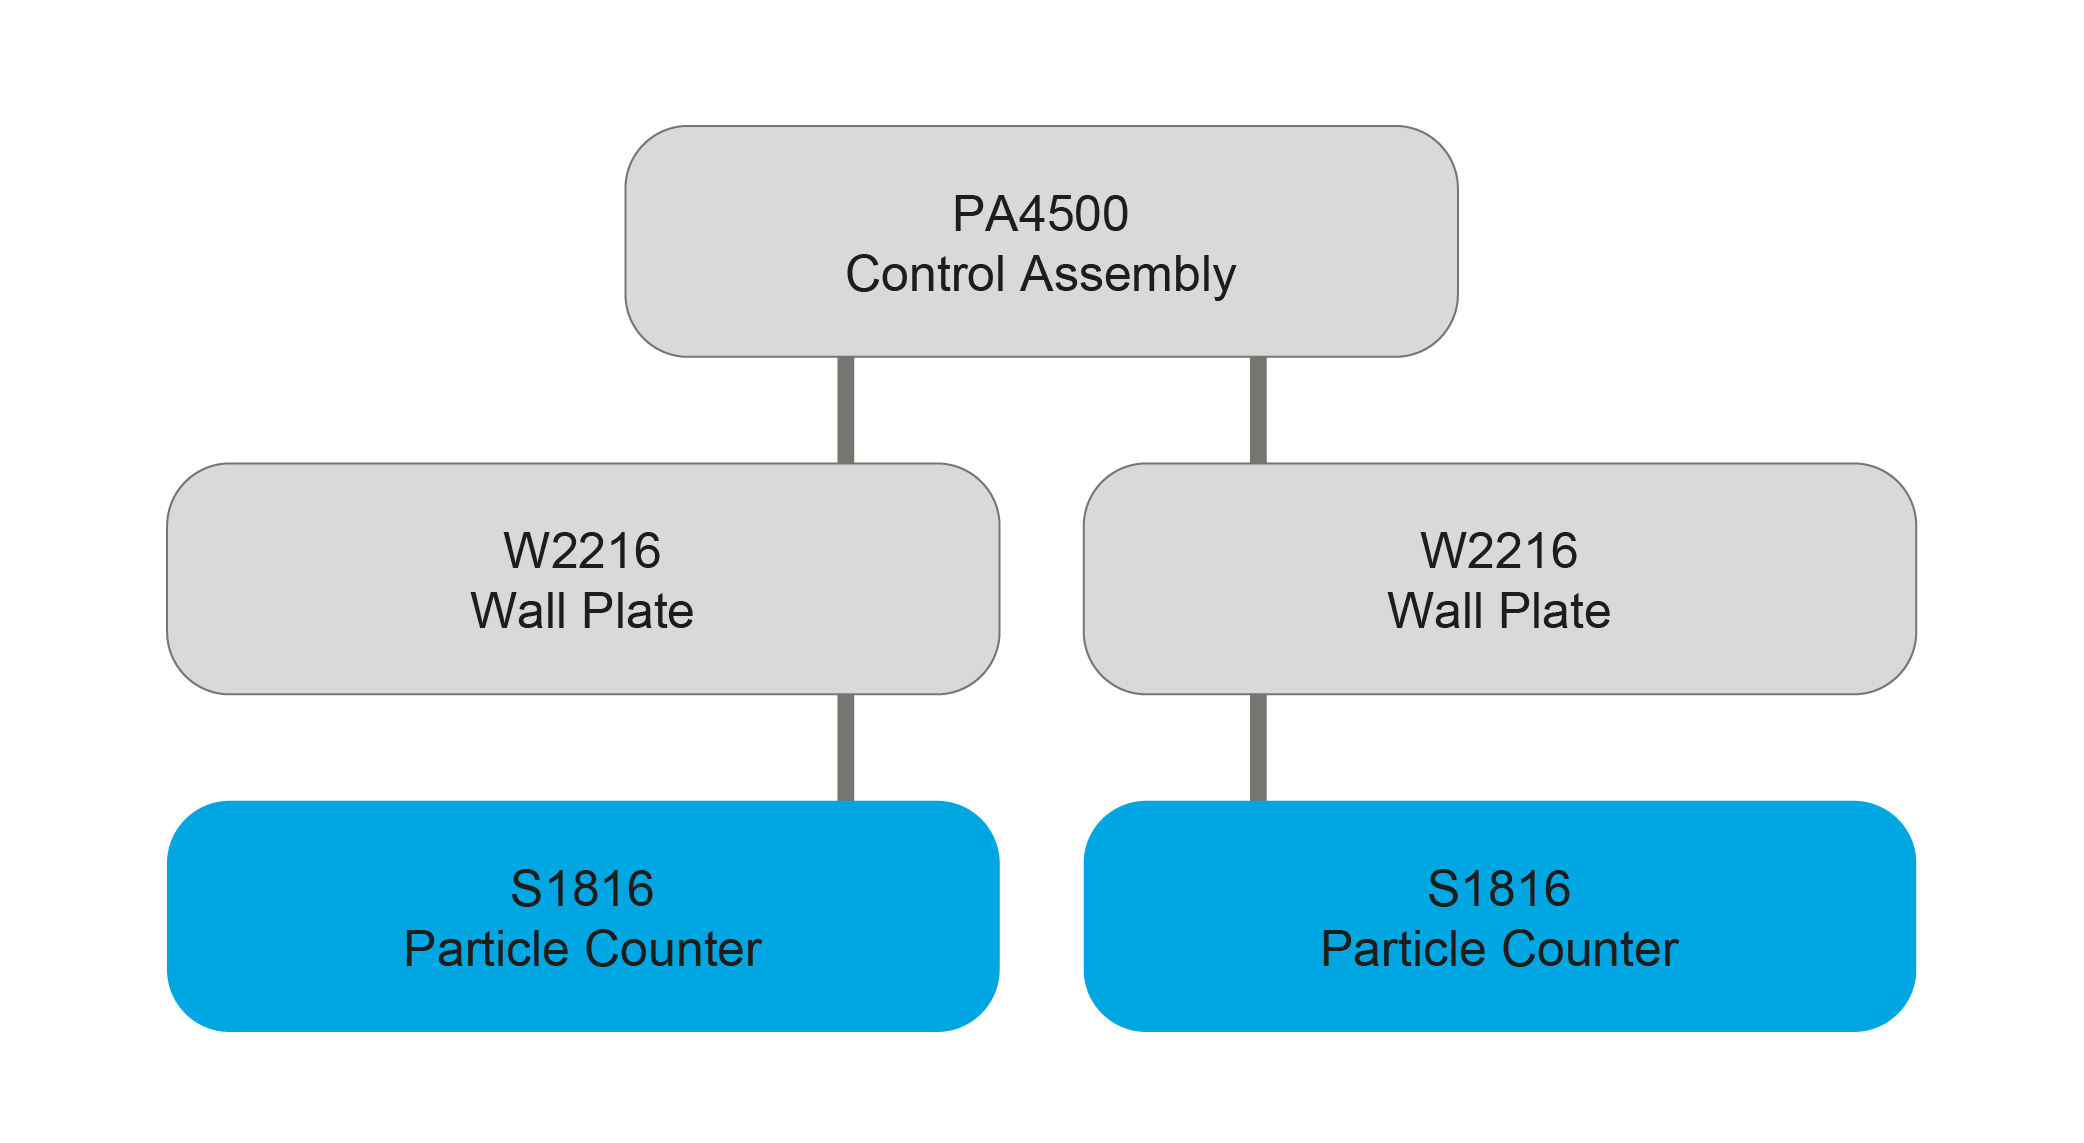 PA4500 Control Assembly diagram